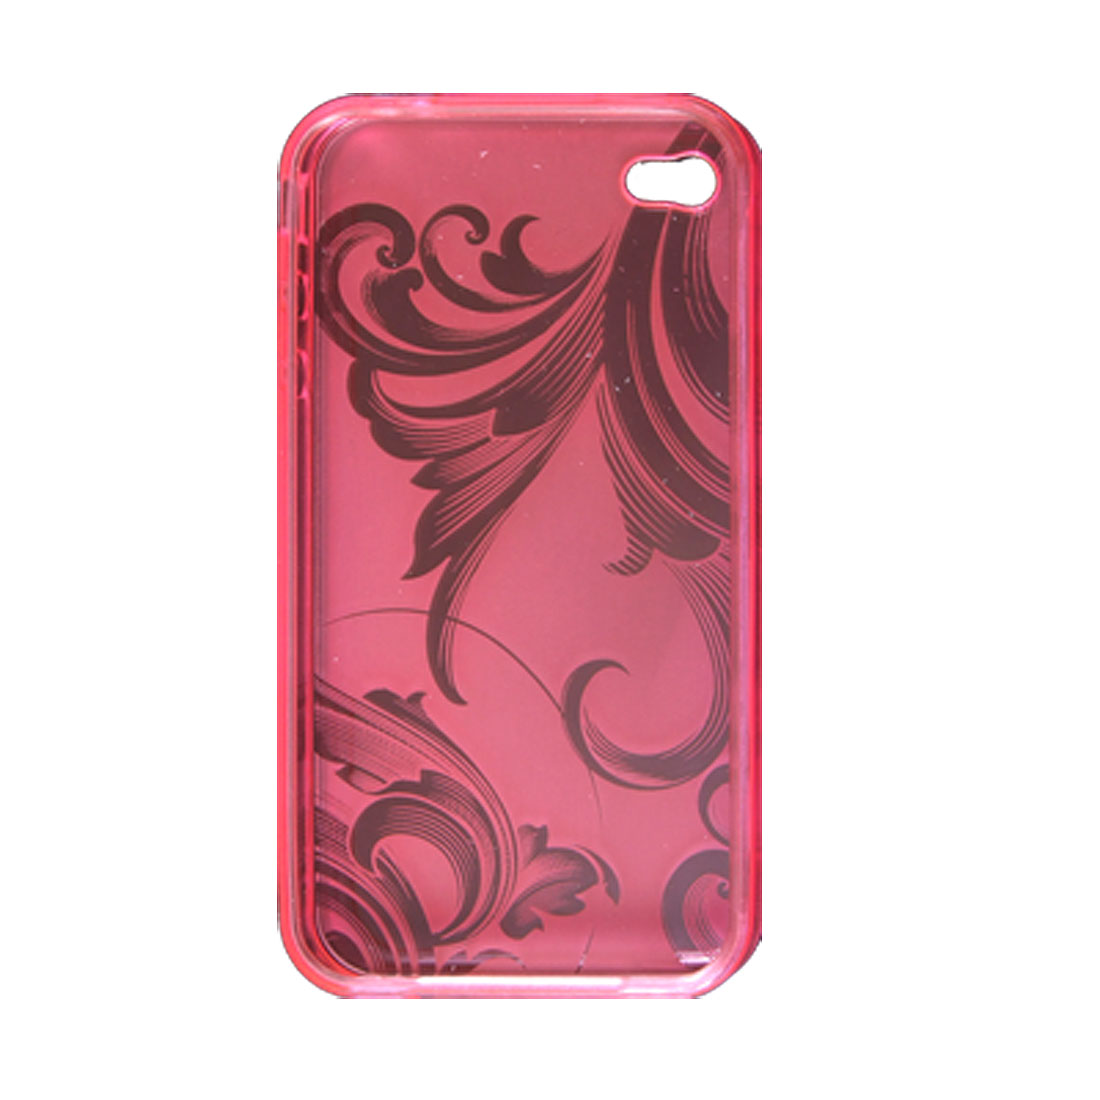 Flower Pattern Soft Plastic Clear Ultra Pink Skin with Screen Guard for iPhone 4